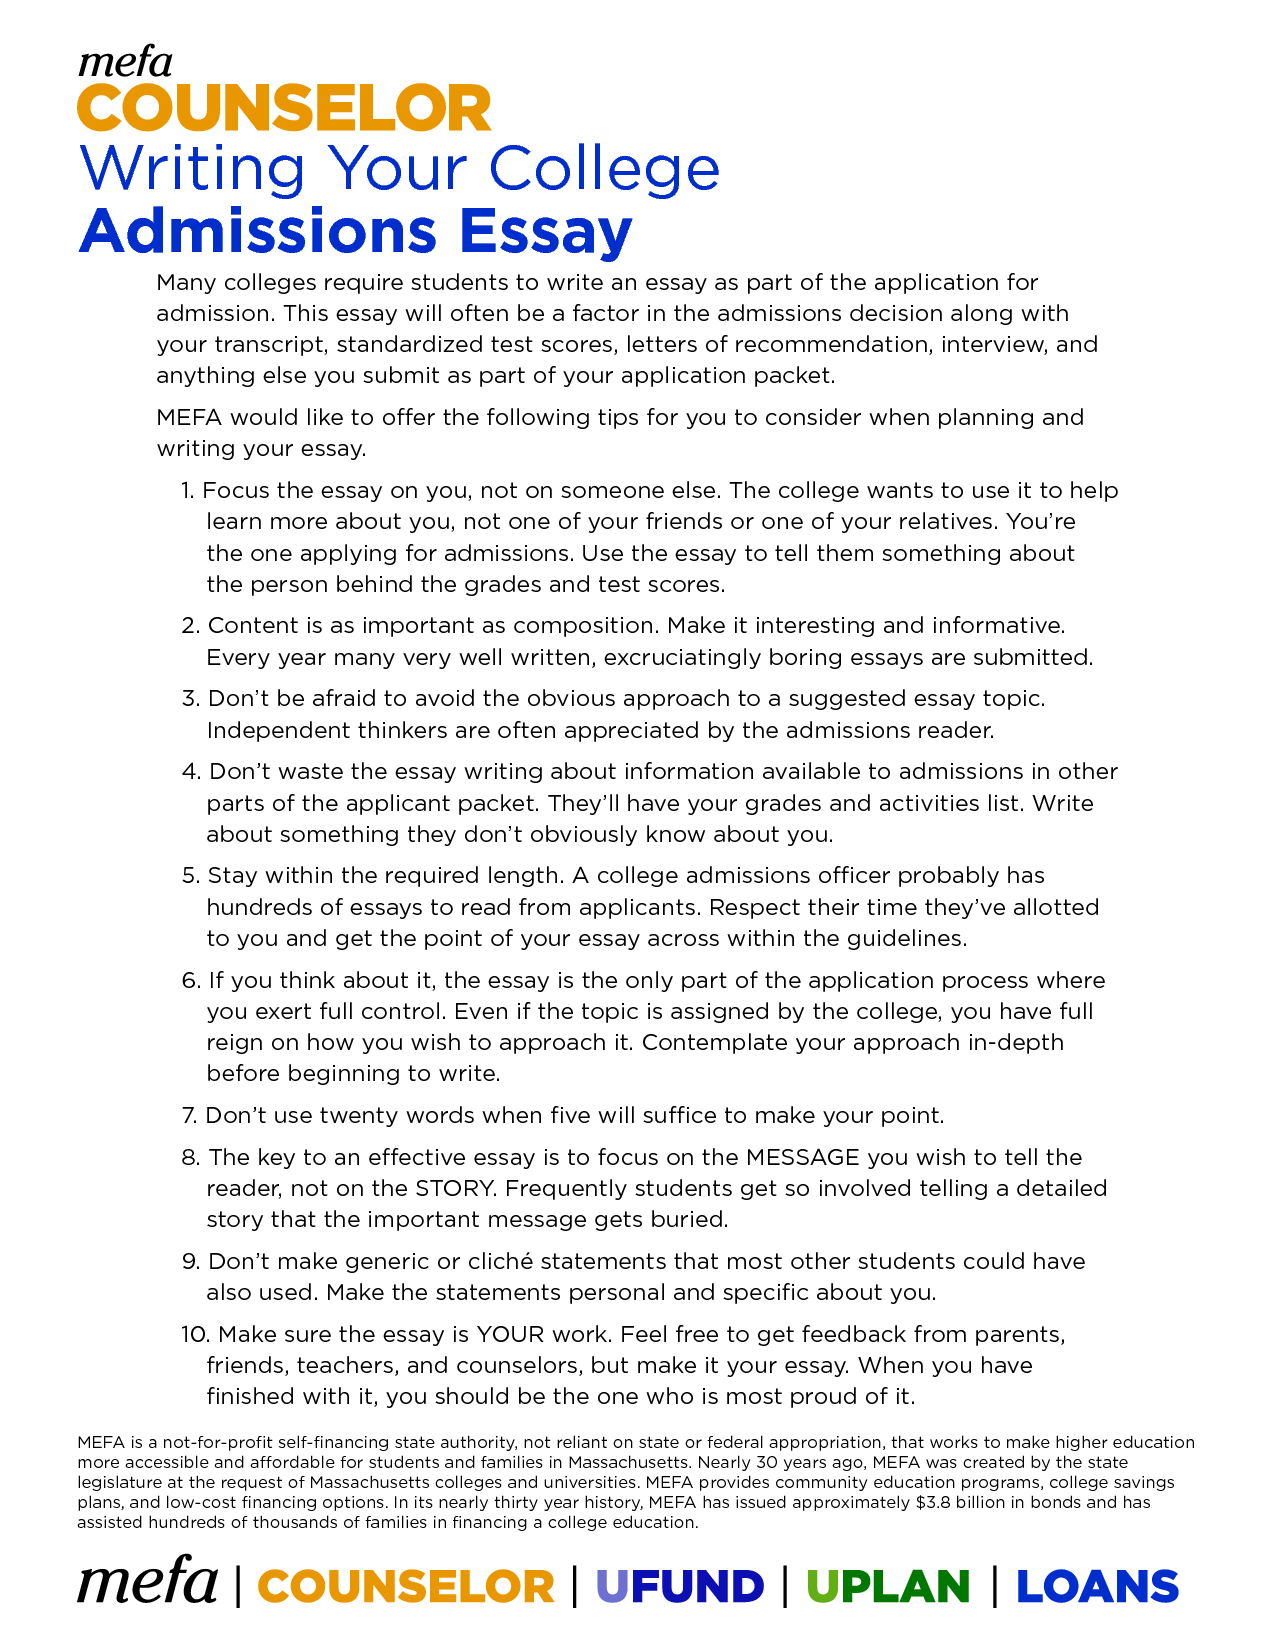 Admission essay service london